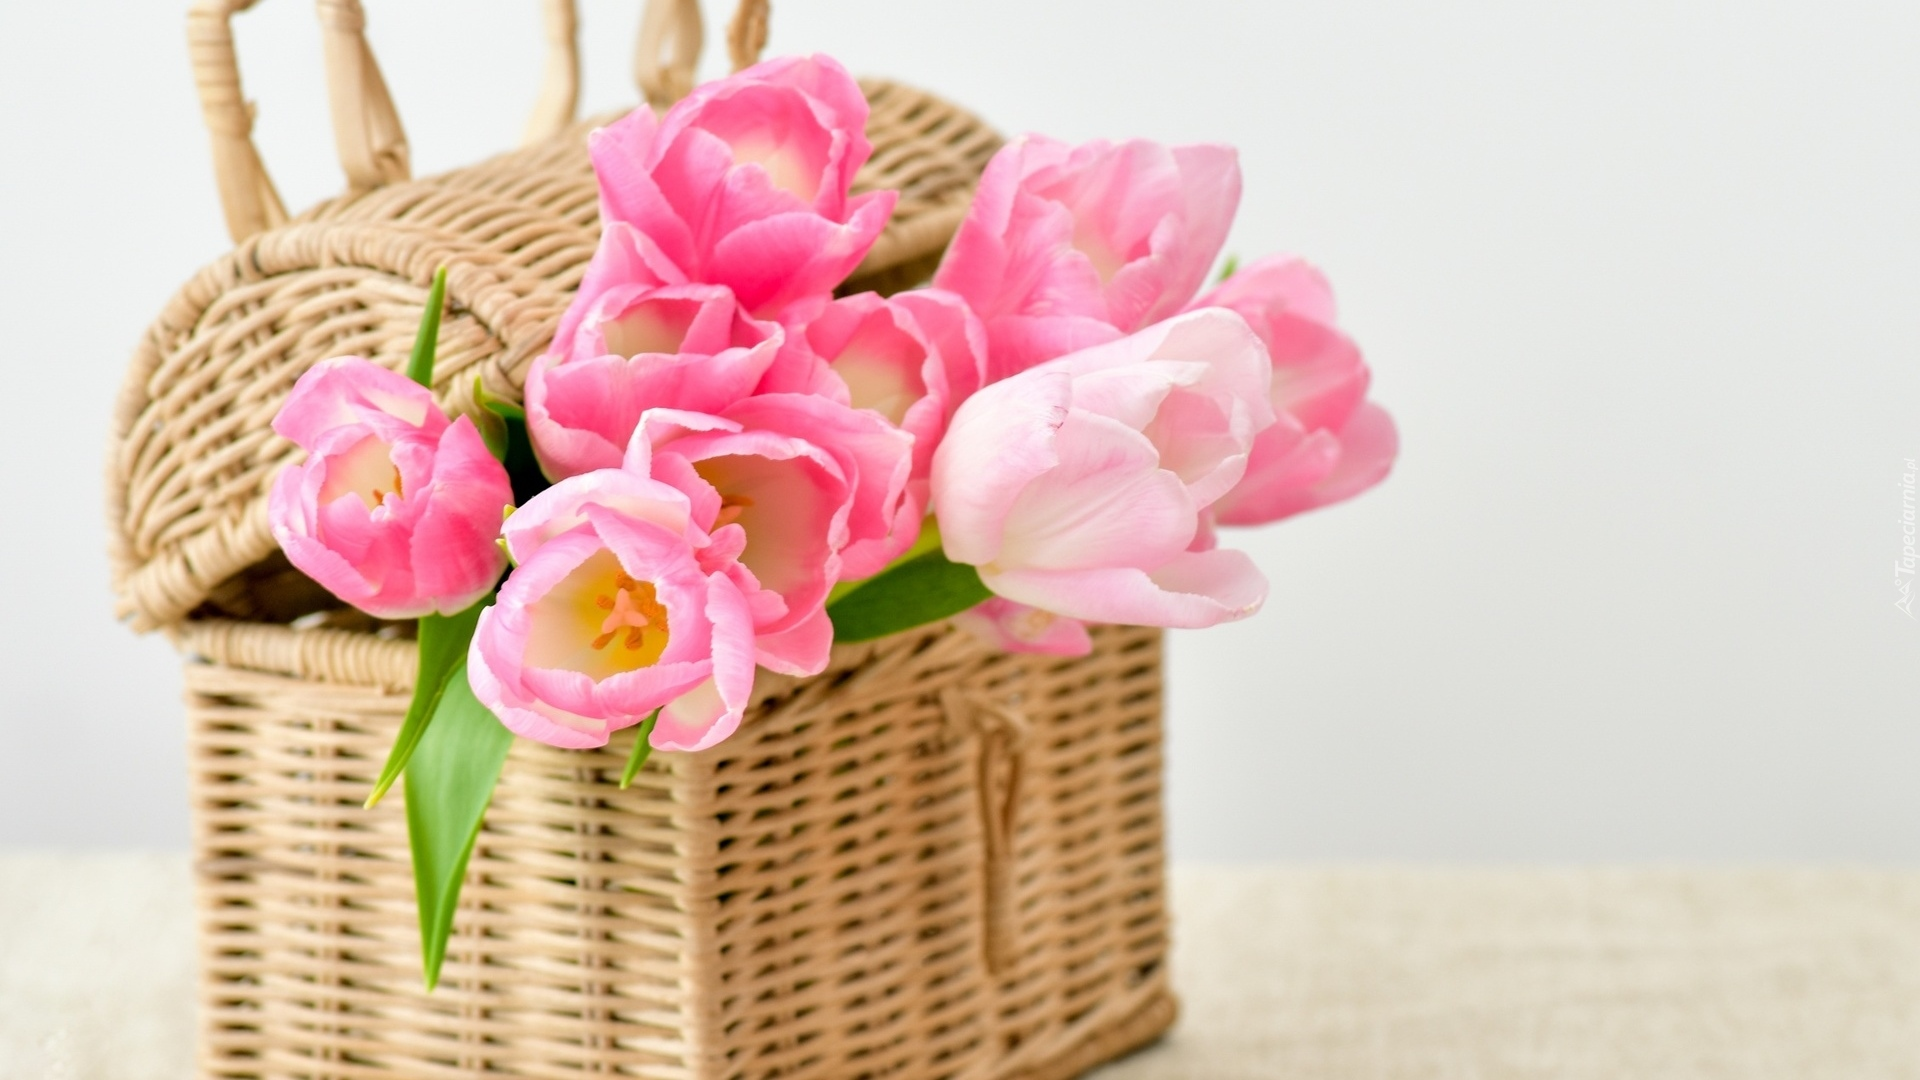 Basket With Flowers free hd wallpaper